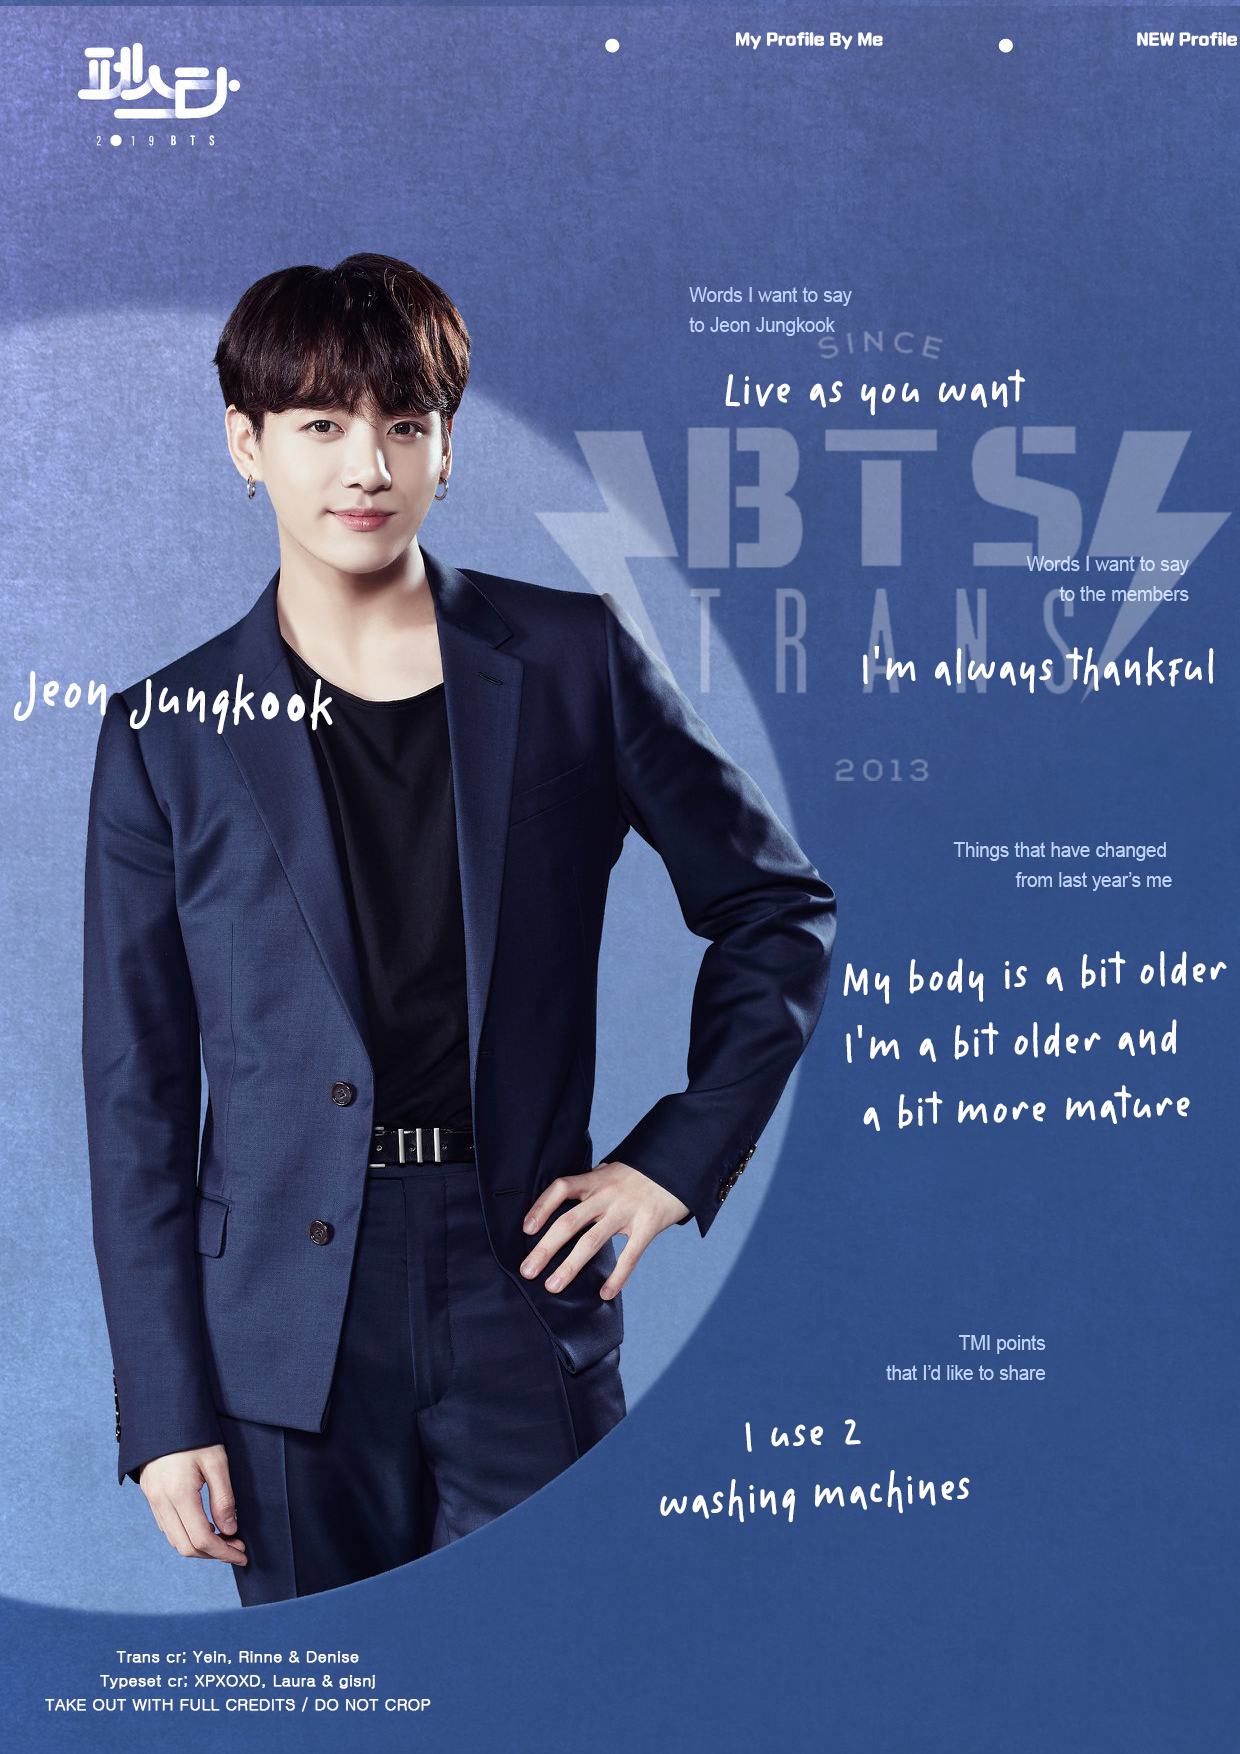 My Profile By Me (Version 1/3): Jeon Jungkook — BTS-TRANS